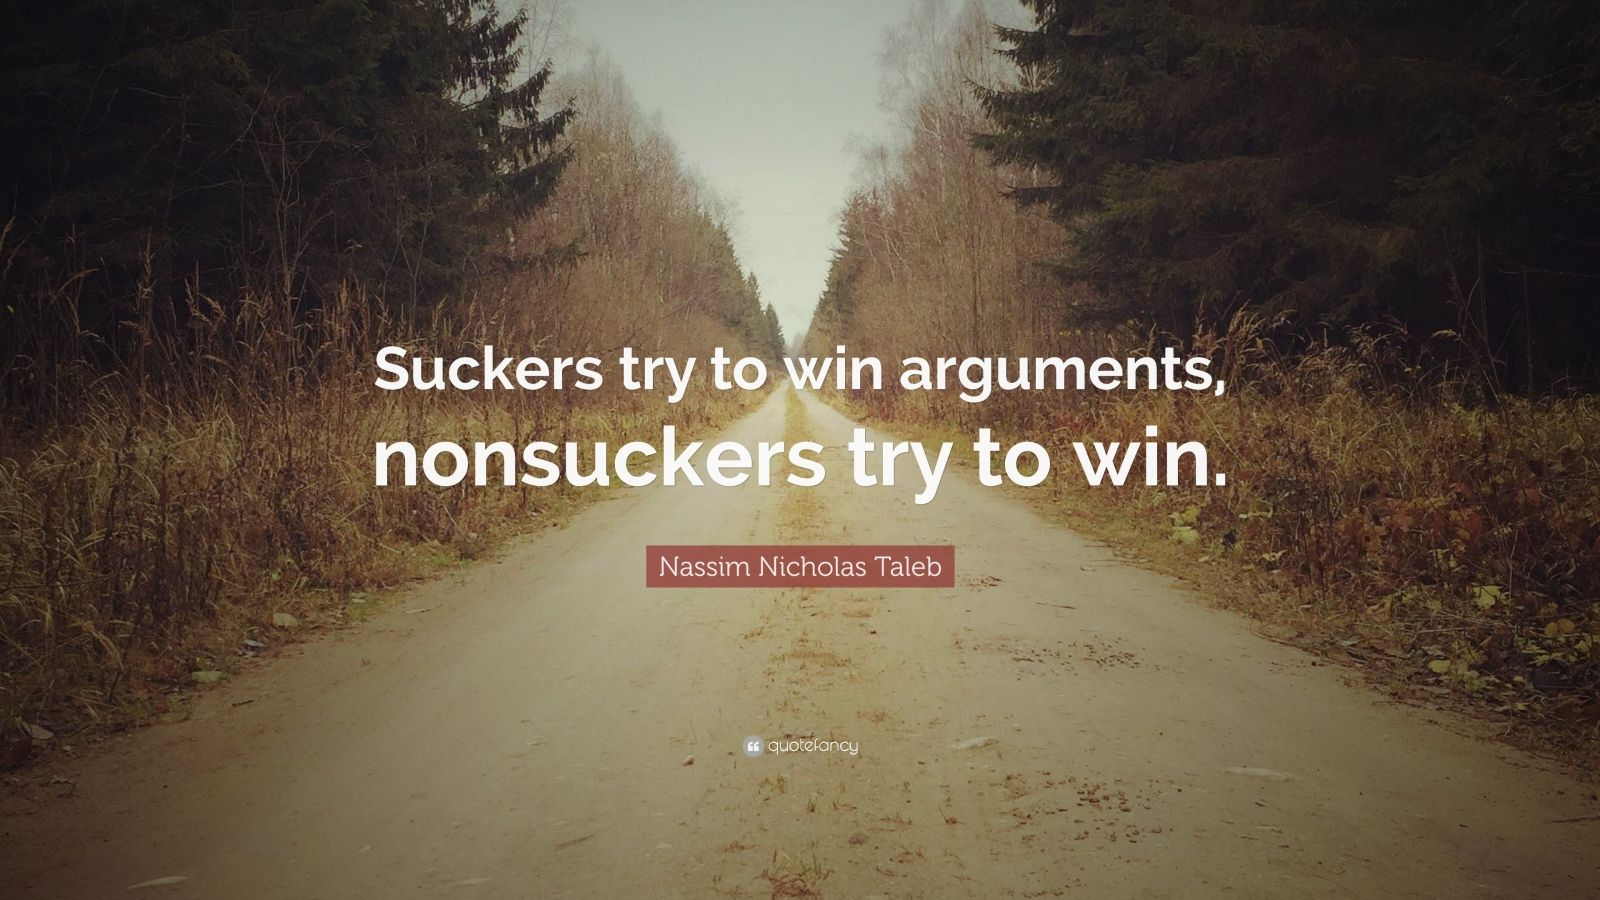 """Nassim Nicholas Taleb Quote: """"Suckers try to win arguments, nonsuckers try to win."""""""